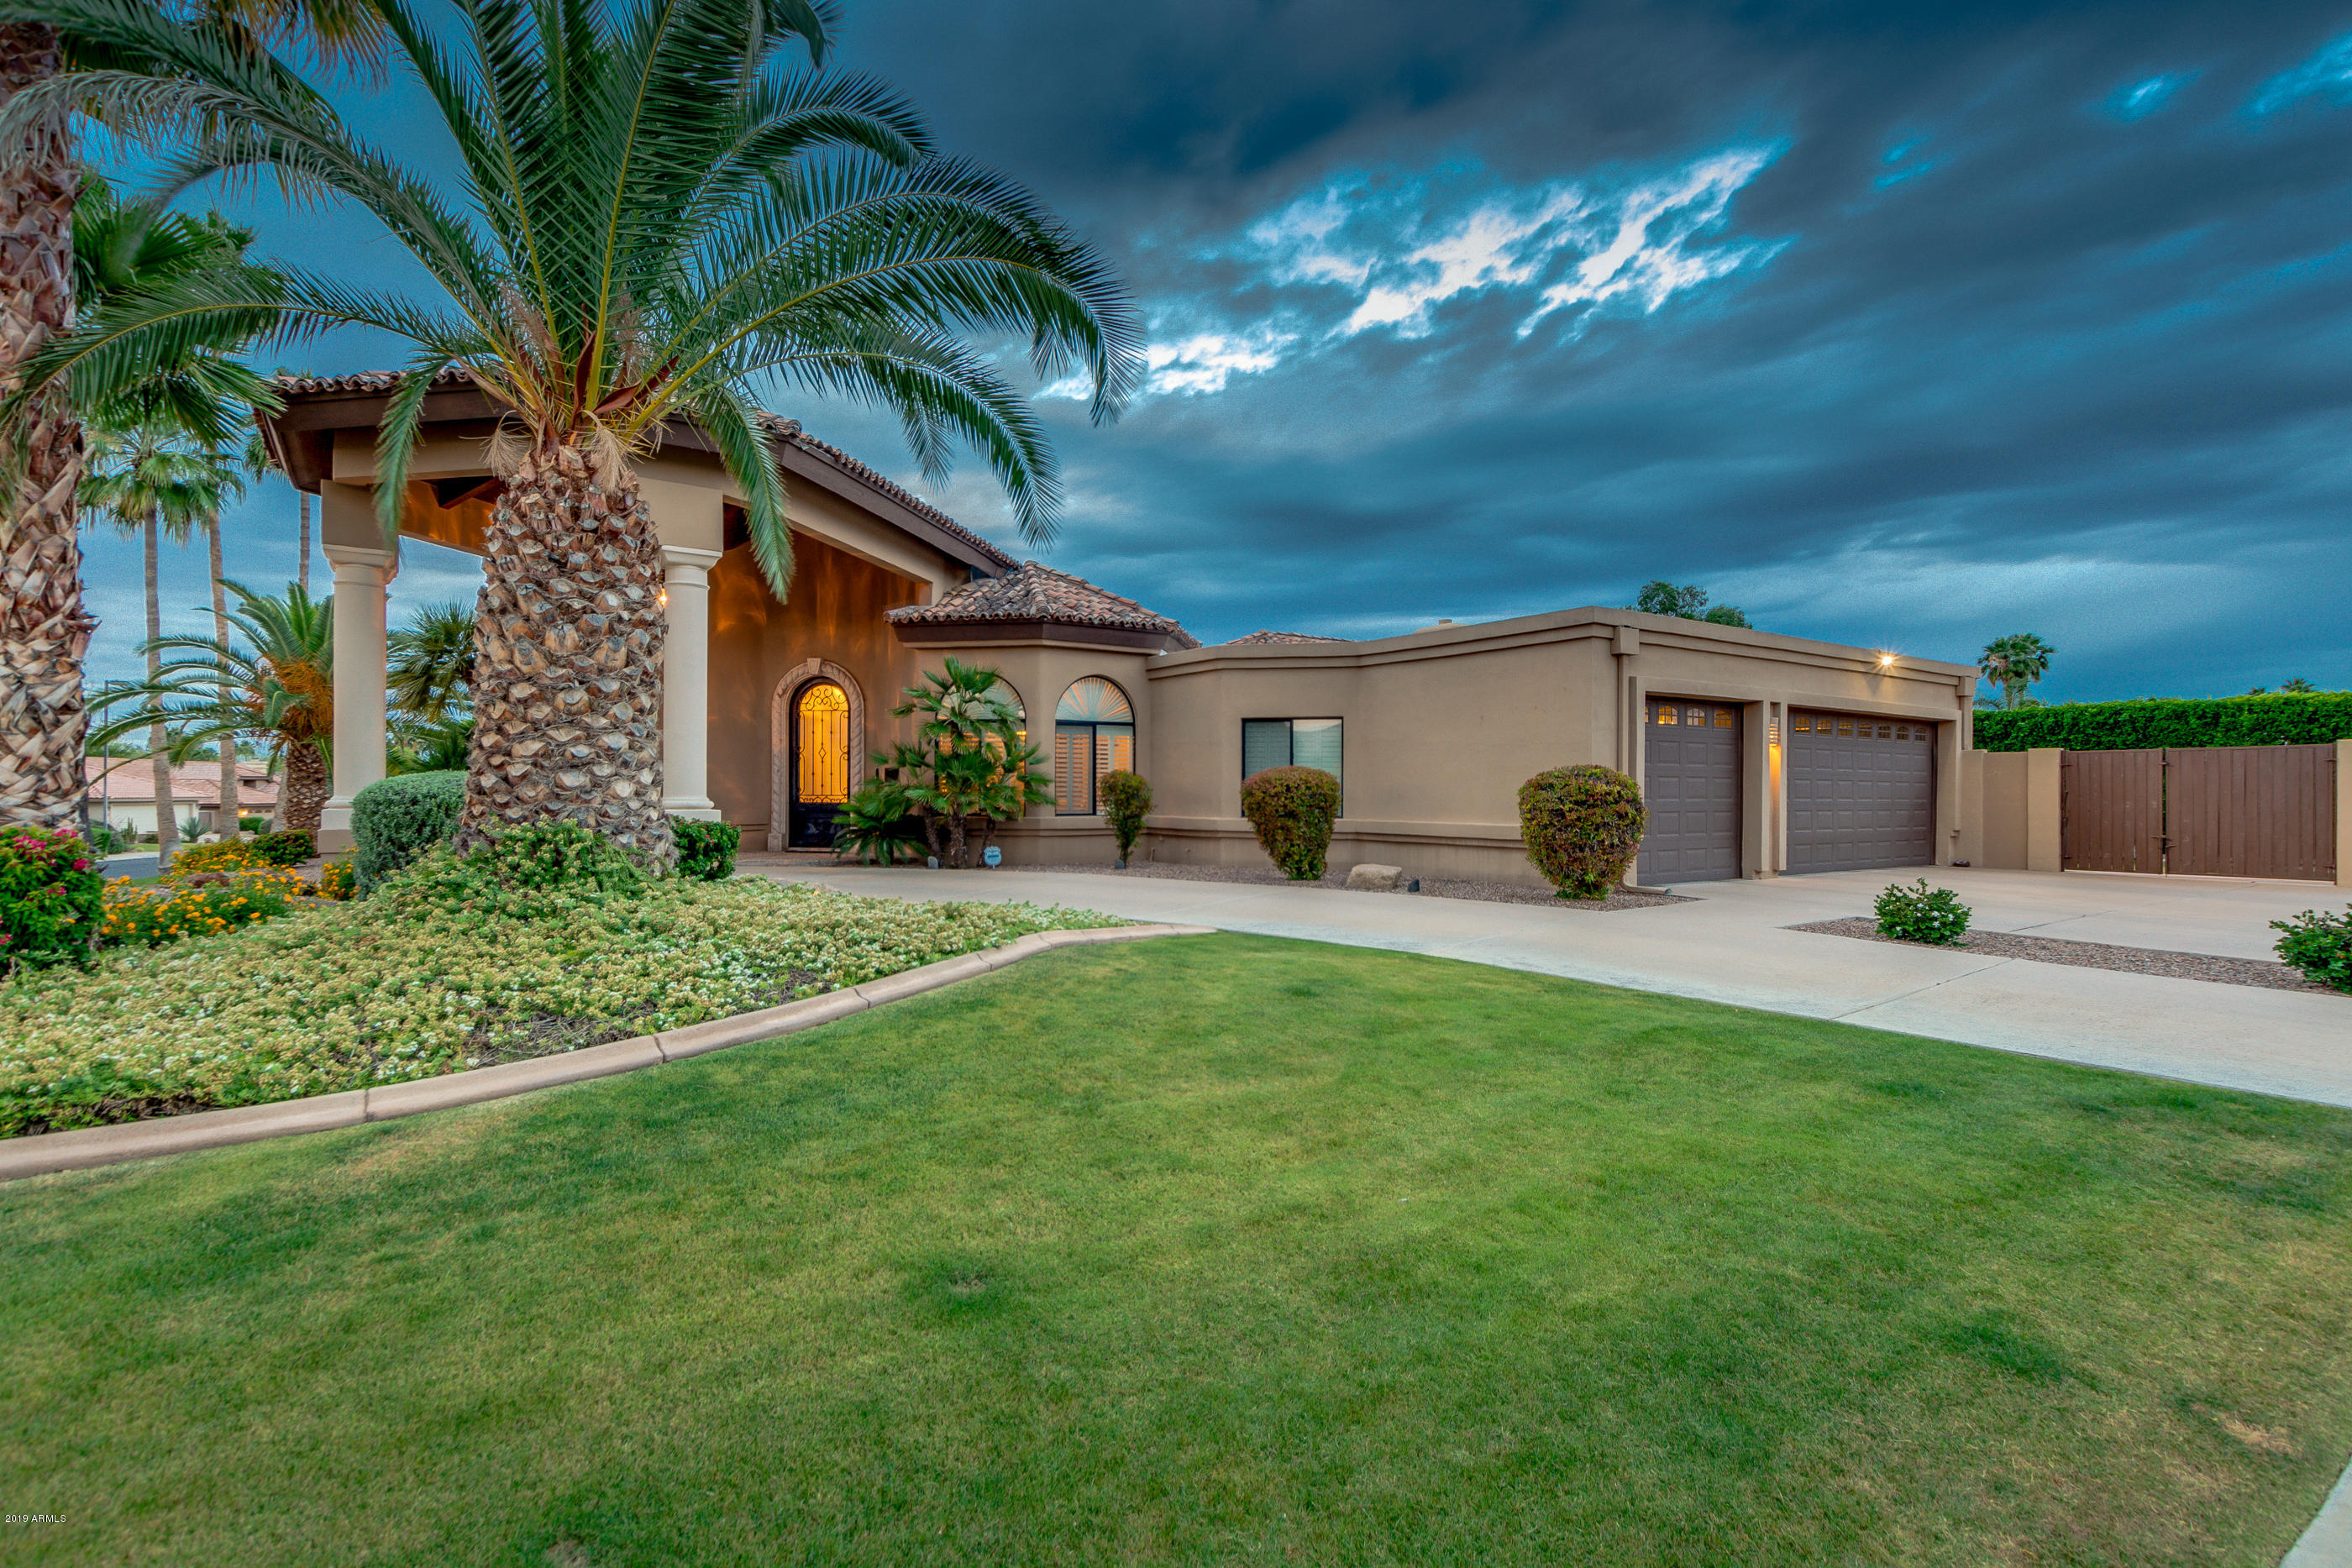 Photo of 10130 E LARKSPUR Drive, Scottsdale, AZ 85260